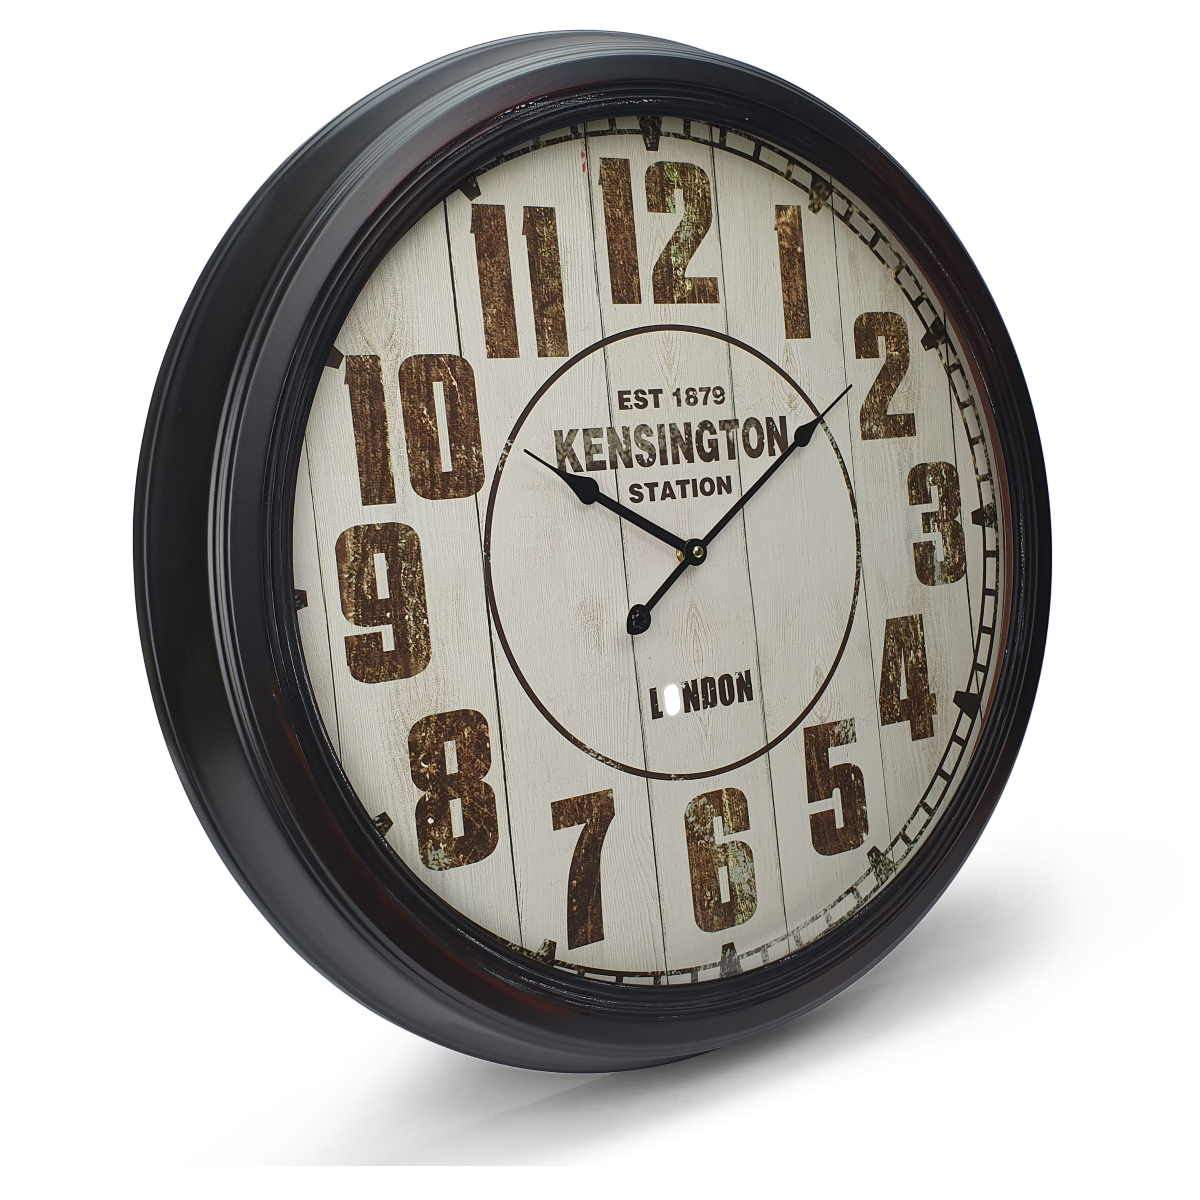 Victory Kensington Station Extra Large Vintage Metal Wall Clock Black 62cm CHH 333 1